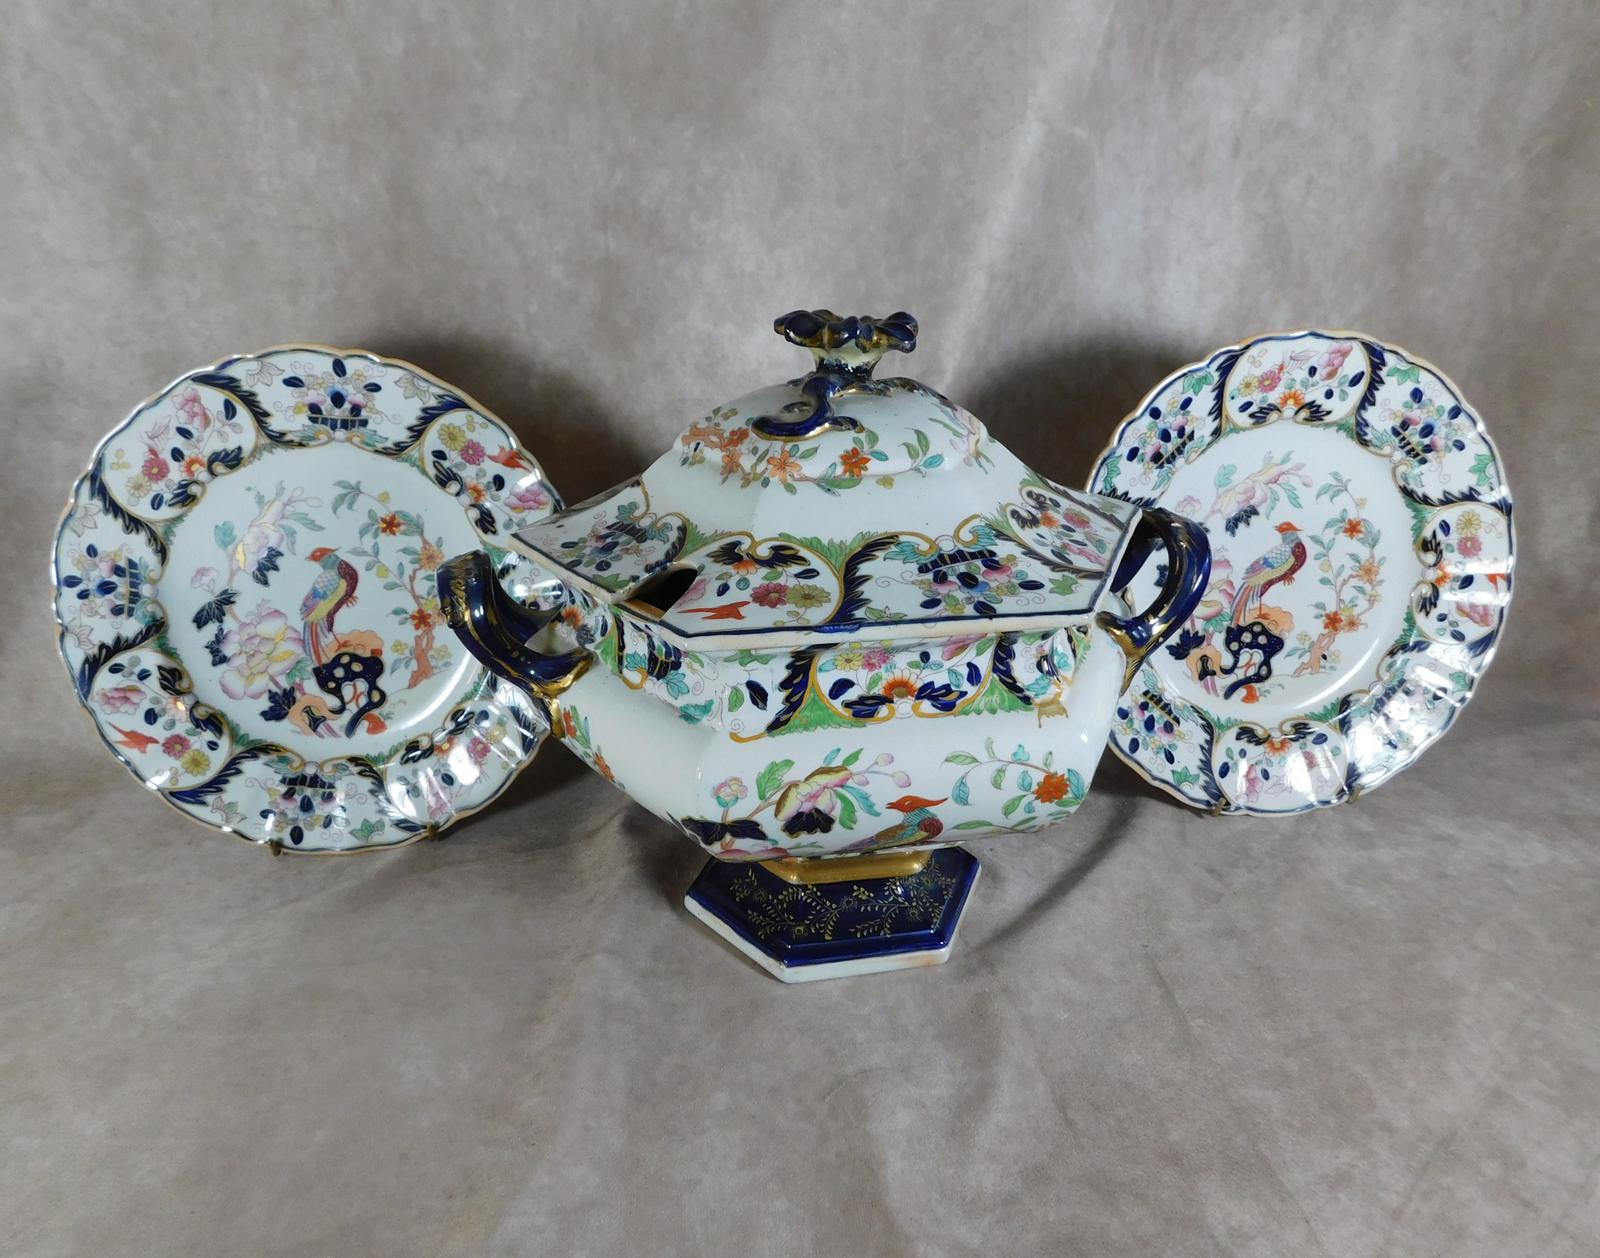 Large, 19th Century, Mason's Ironstone Soup Tureen with a Pair of Matching Plates, Retailed by Allsup (1 of 1)